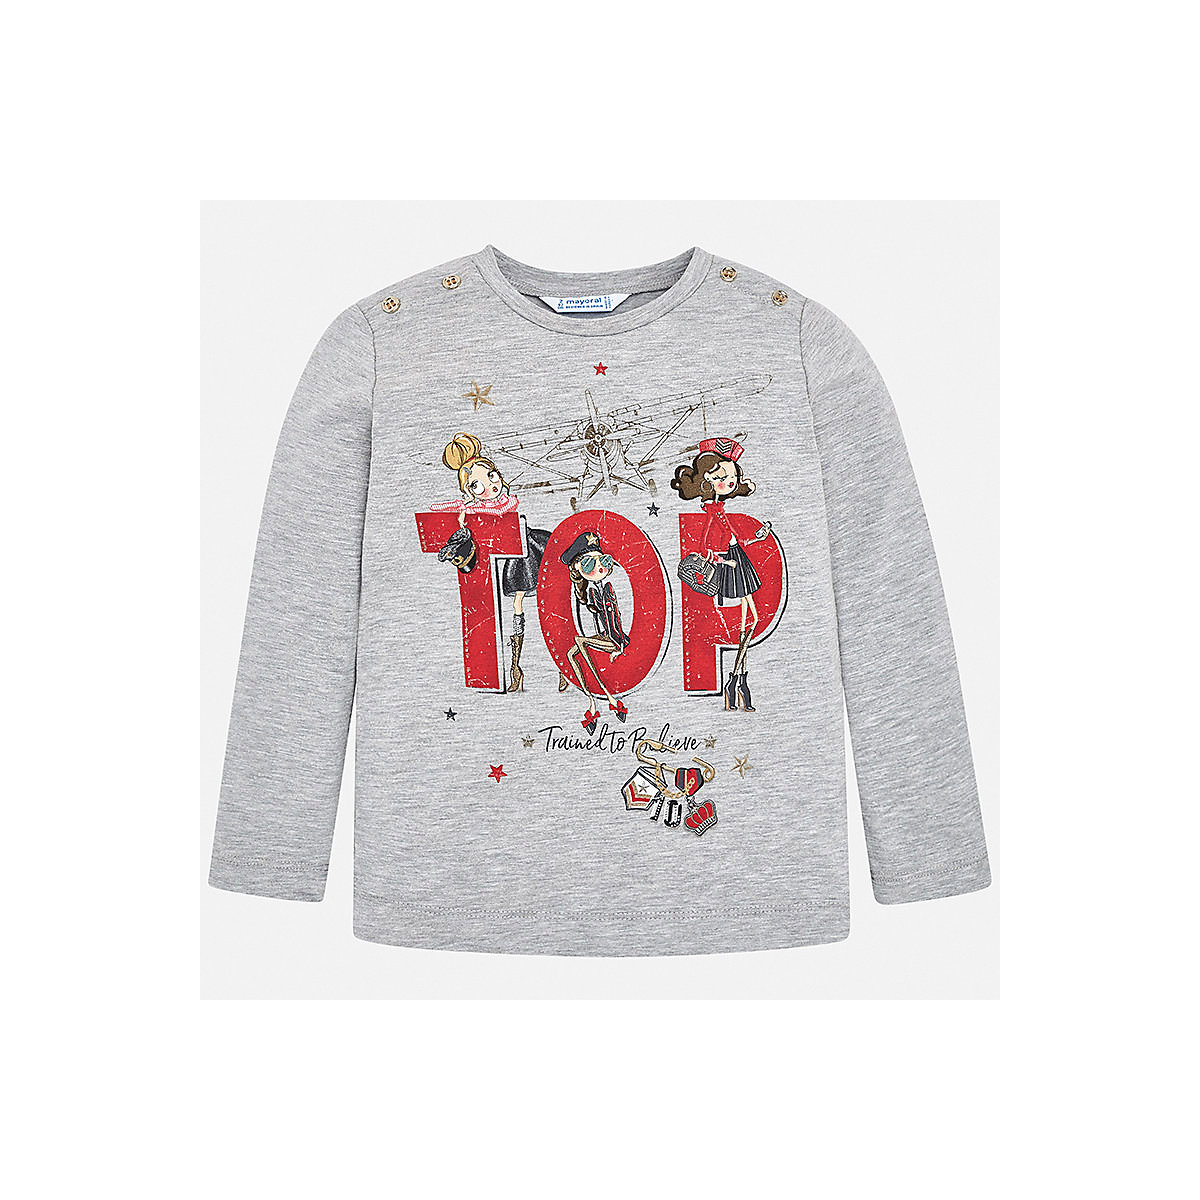 MAYORAL Blouses & Shirts 8848669 Girls Cotton  clothes baby boy children child wear blouses